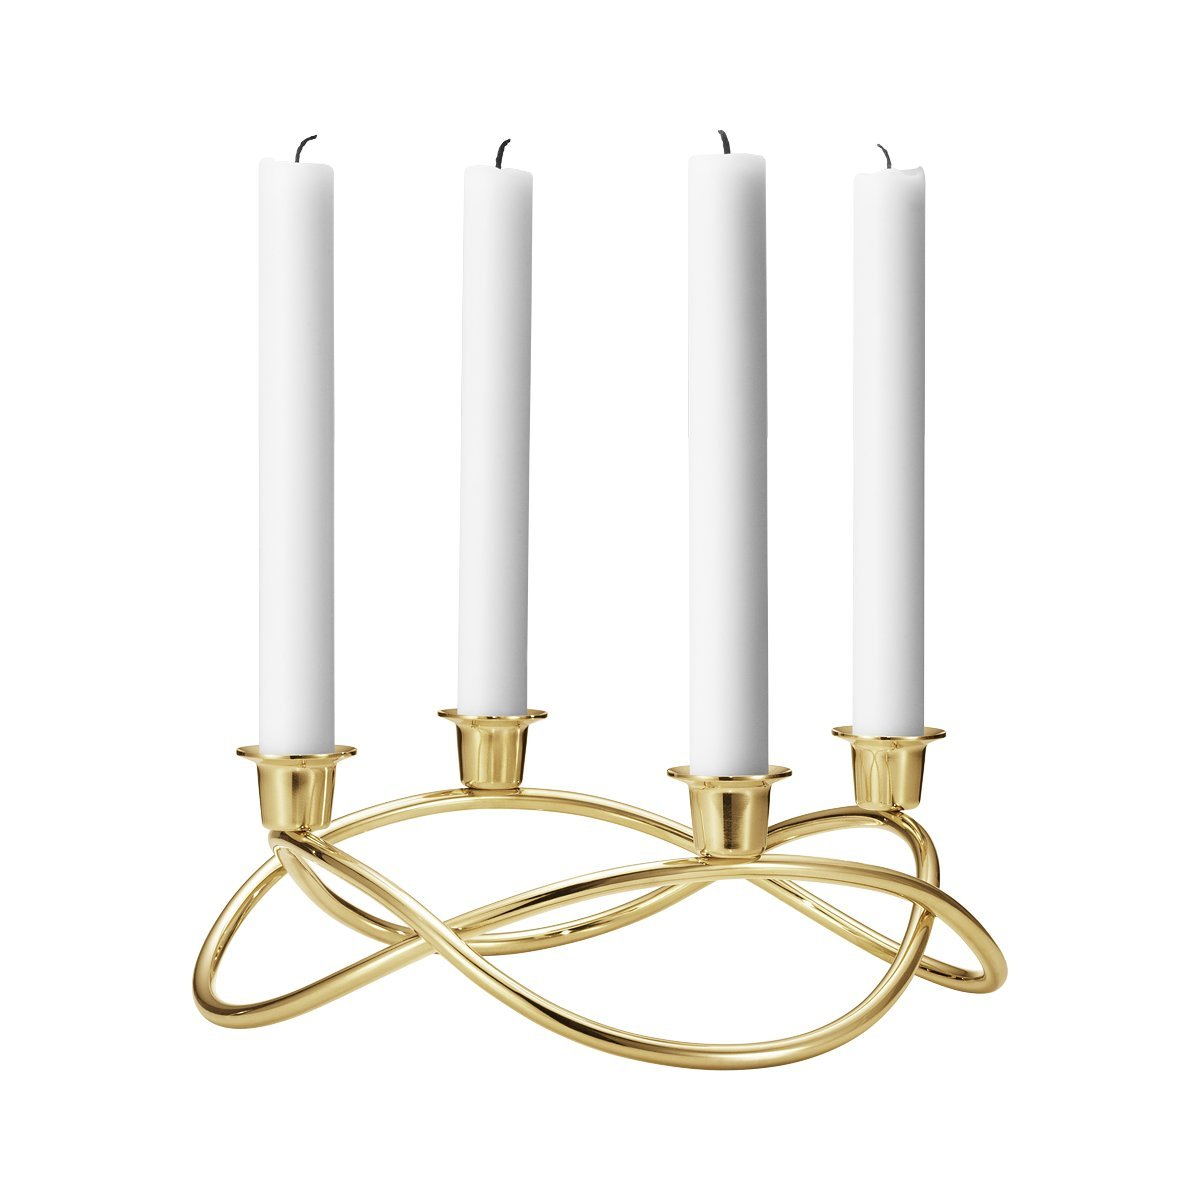 Georg Jensen Season Candle Holder, 18Kt Gold Plated Stainless Steel by Georg Jensen